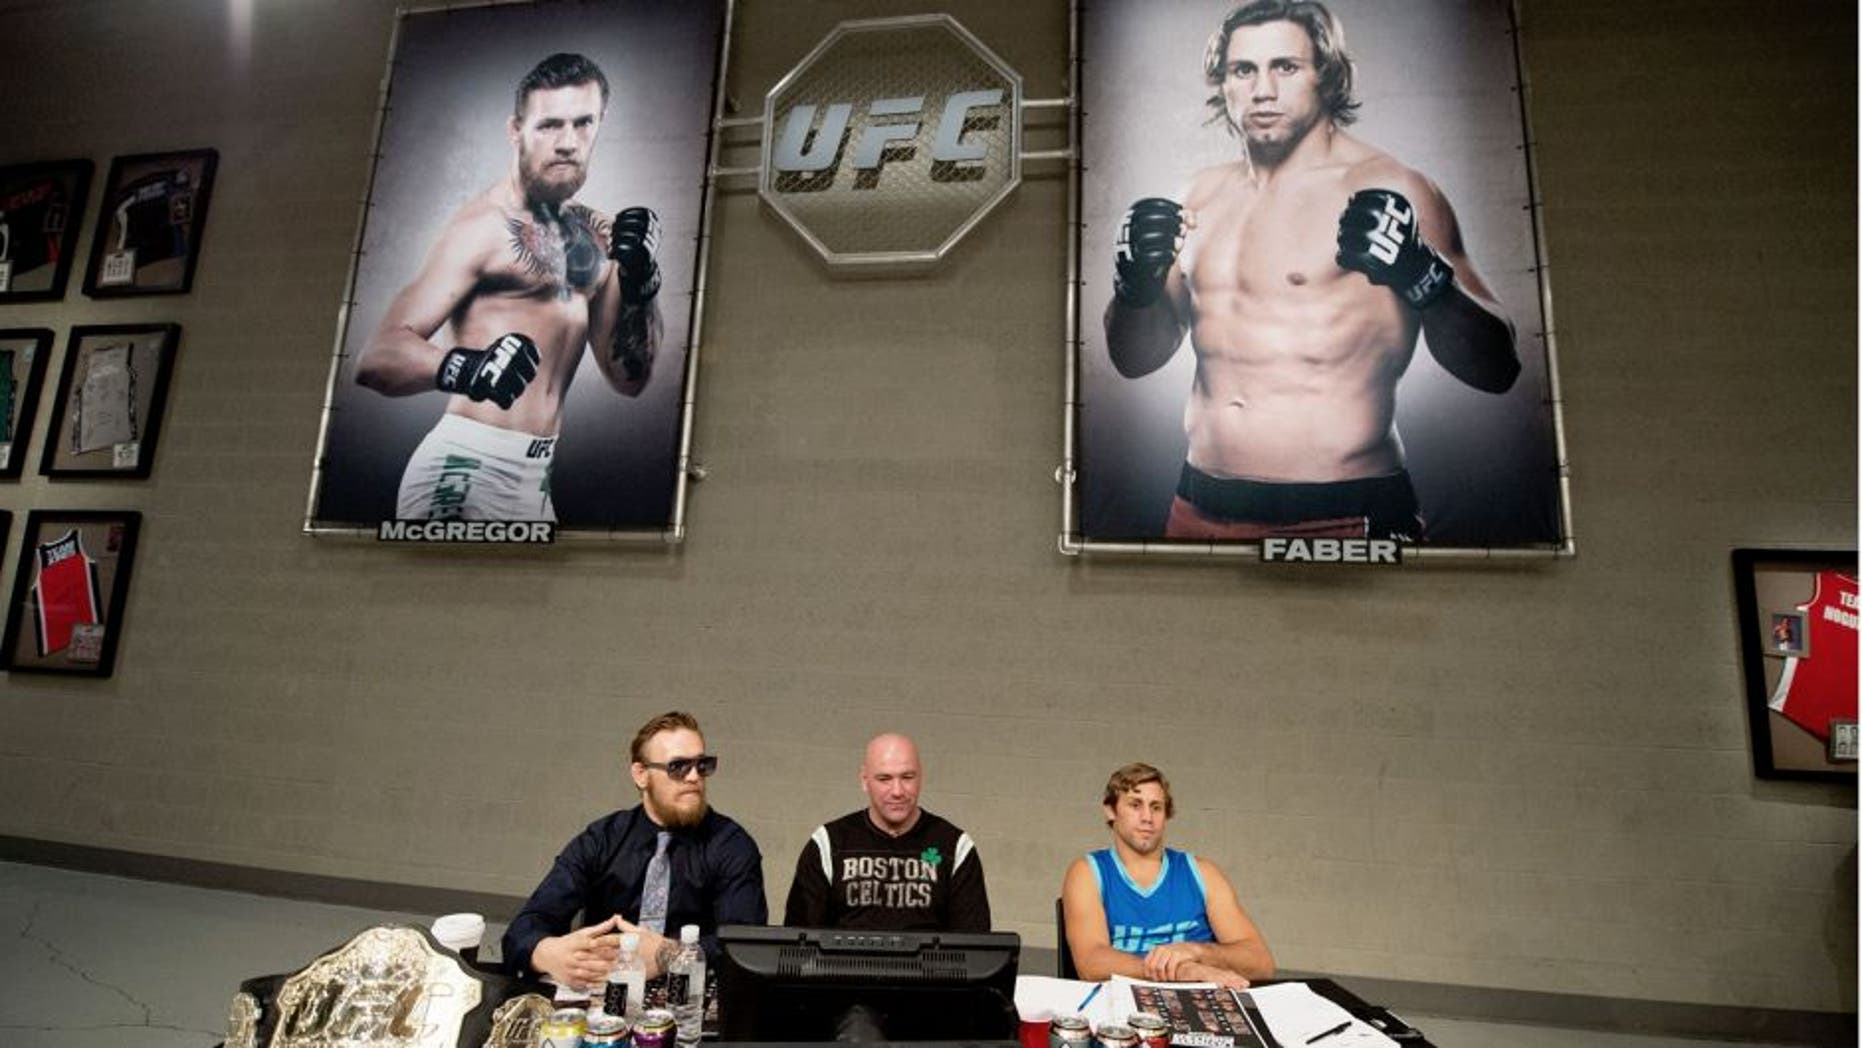 LAS VEGAS, NV - JULY 17: (L-R) Conor McGregor, UFC president Dana White, and Urijah Faber watch the elimination fights at the UFC TUF Gym on July 17, 2015 in Las Vegas, Nevada. (Photo by Brandon Magnus/Zuffa LLC/Zuffa LLC via Getty Images)